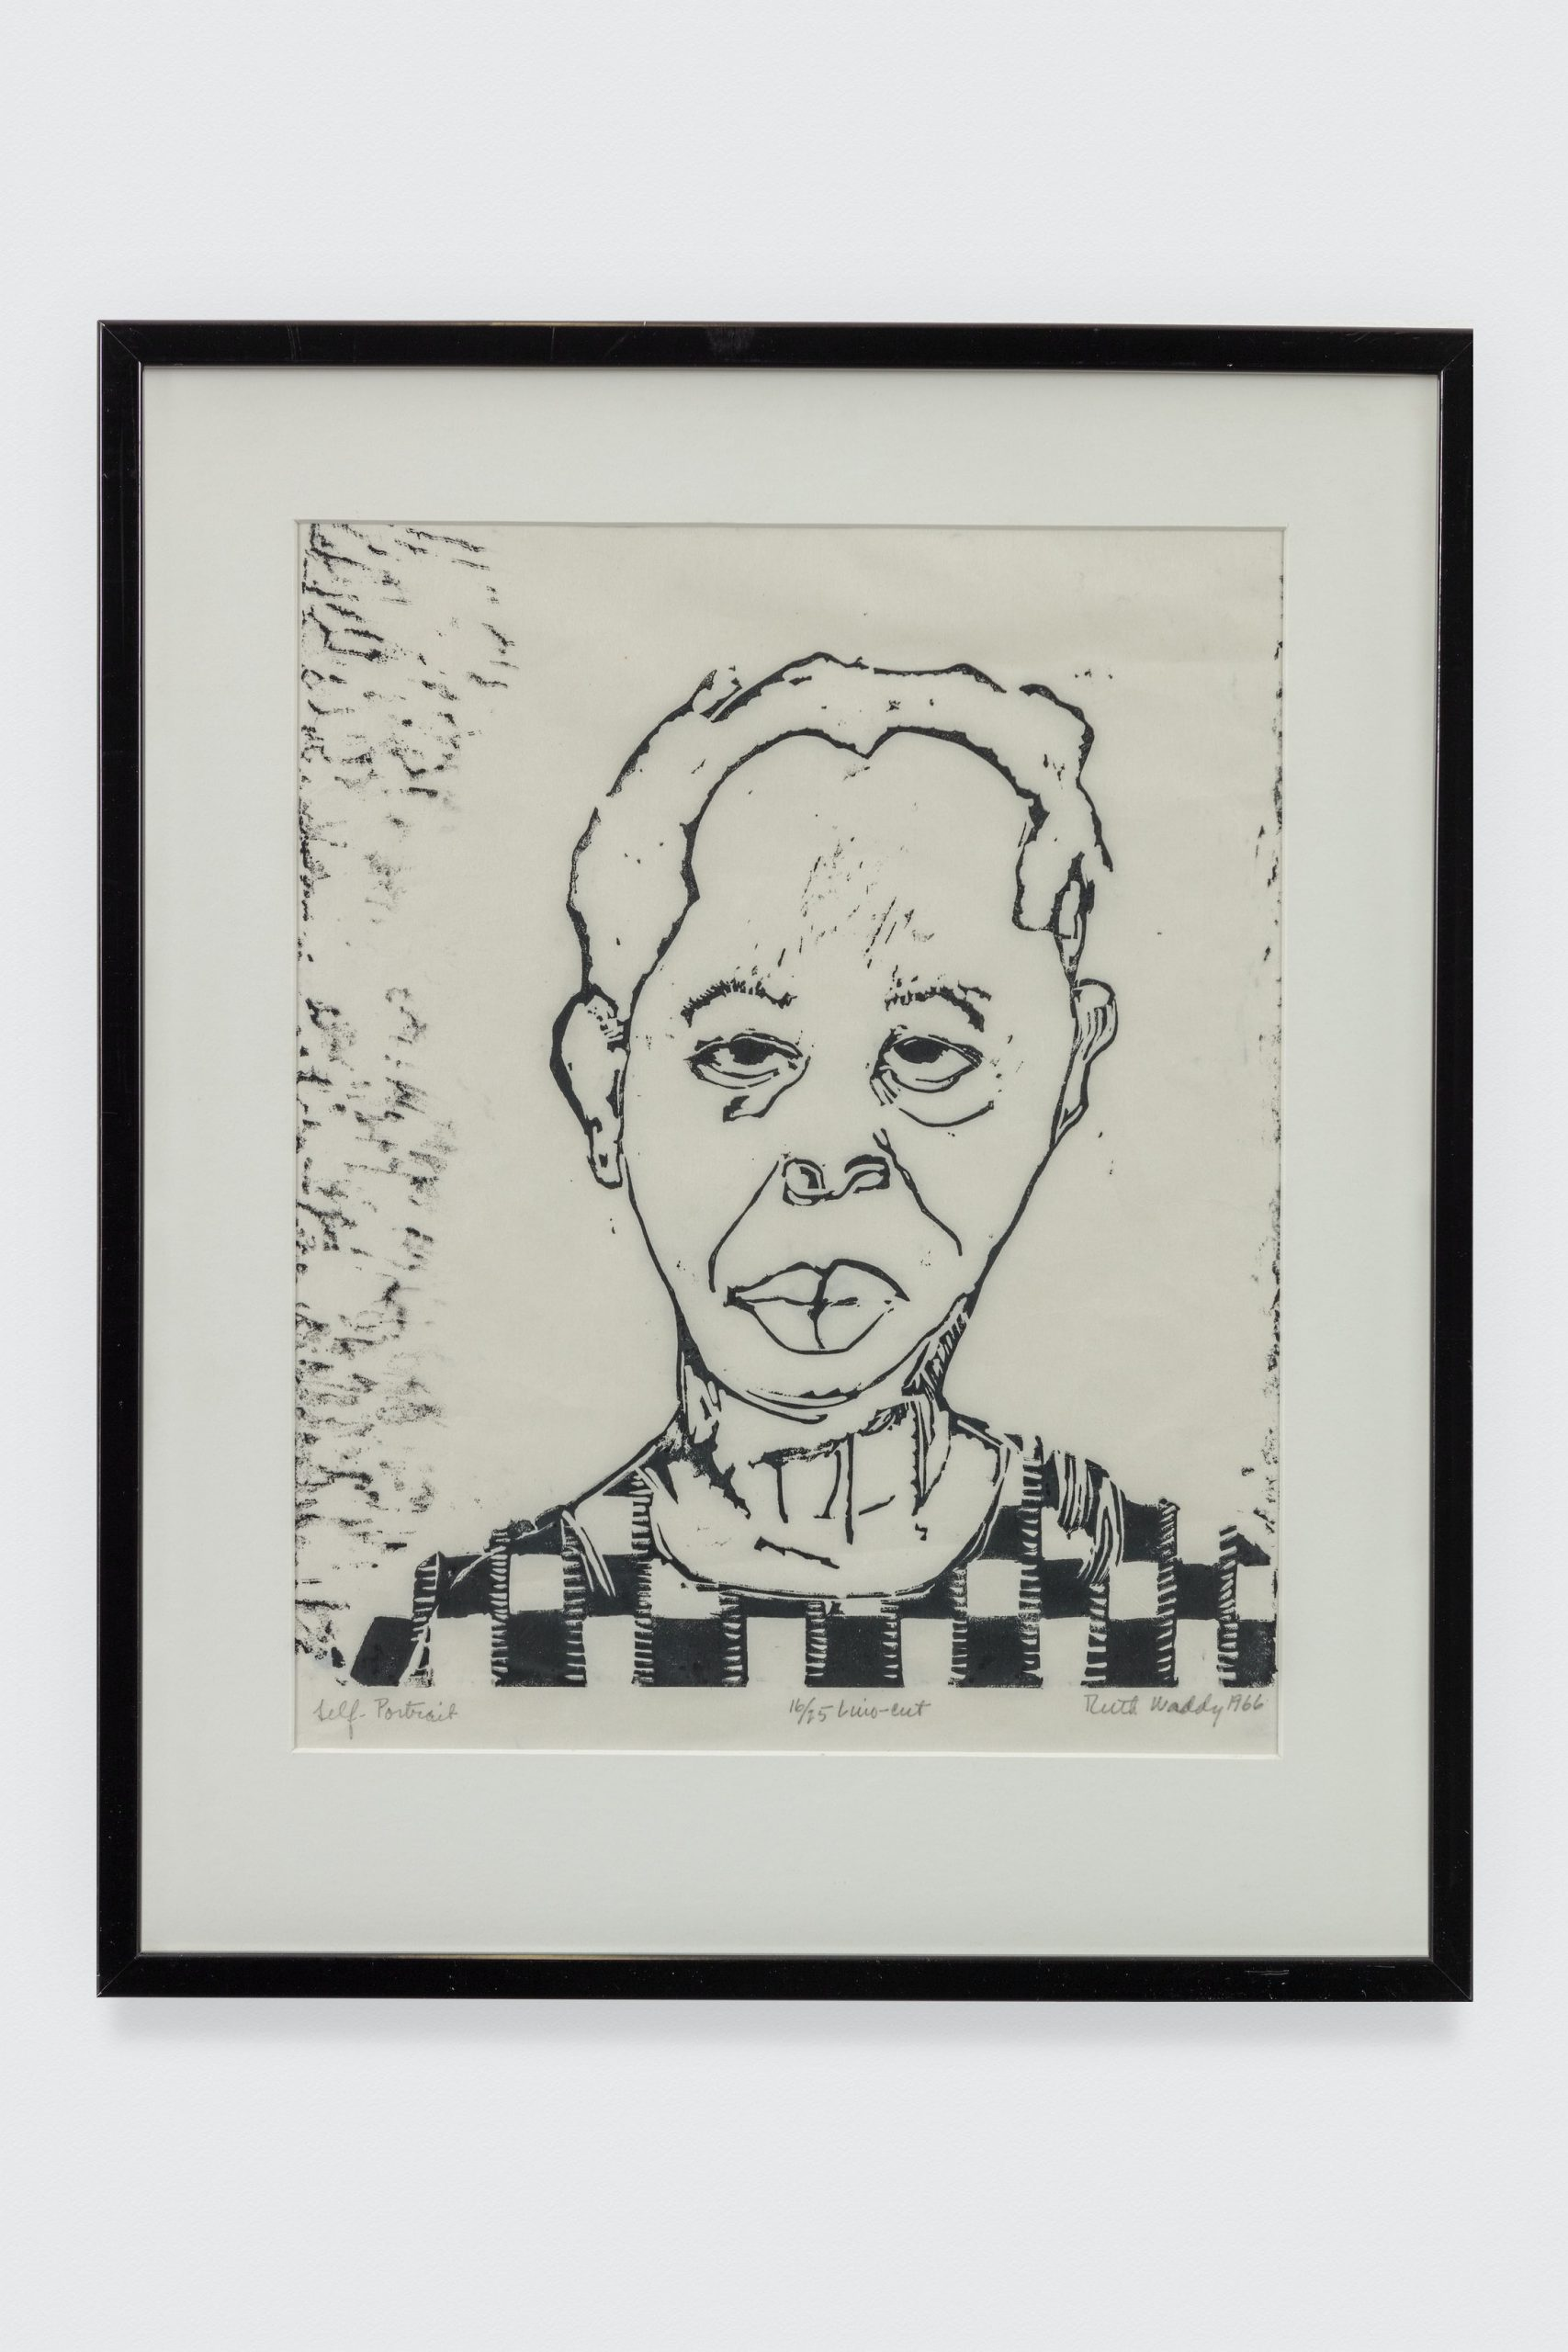 Ruth Waddy, Self Portrait, 1966. Lino-cut print. 23 x 19 3/4 in. © Ruth Waddy. The Eileen Harris Norton Collection. Photo: Charles White.